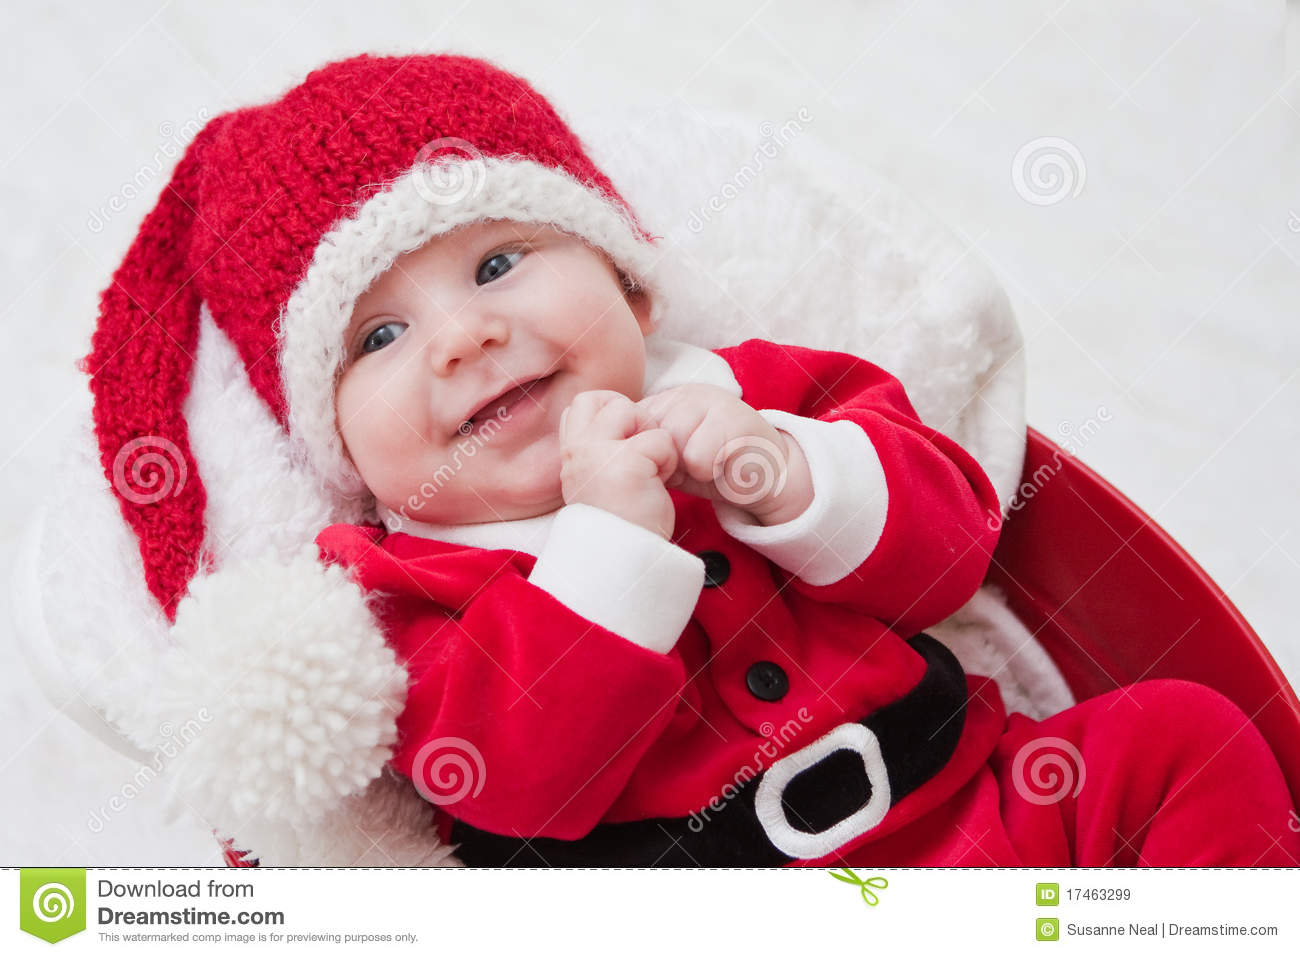 Indian Baby Girl Wallpaper Hd Smiling Baby In Santa Cap And Outfit Stock Image Image